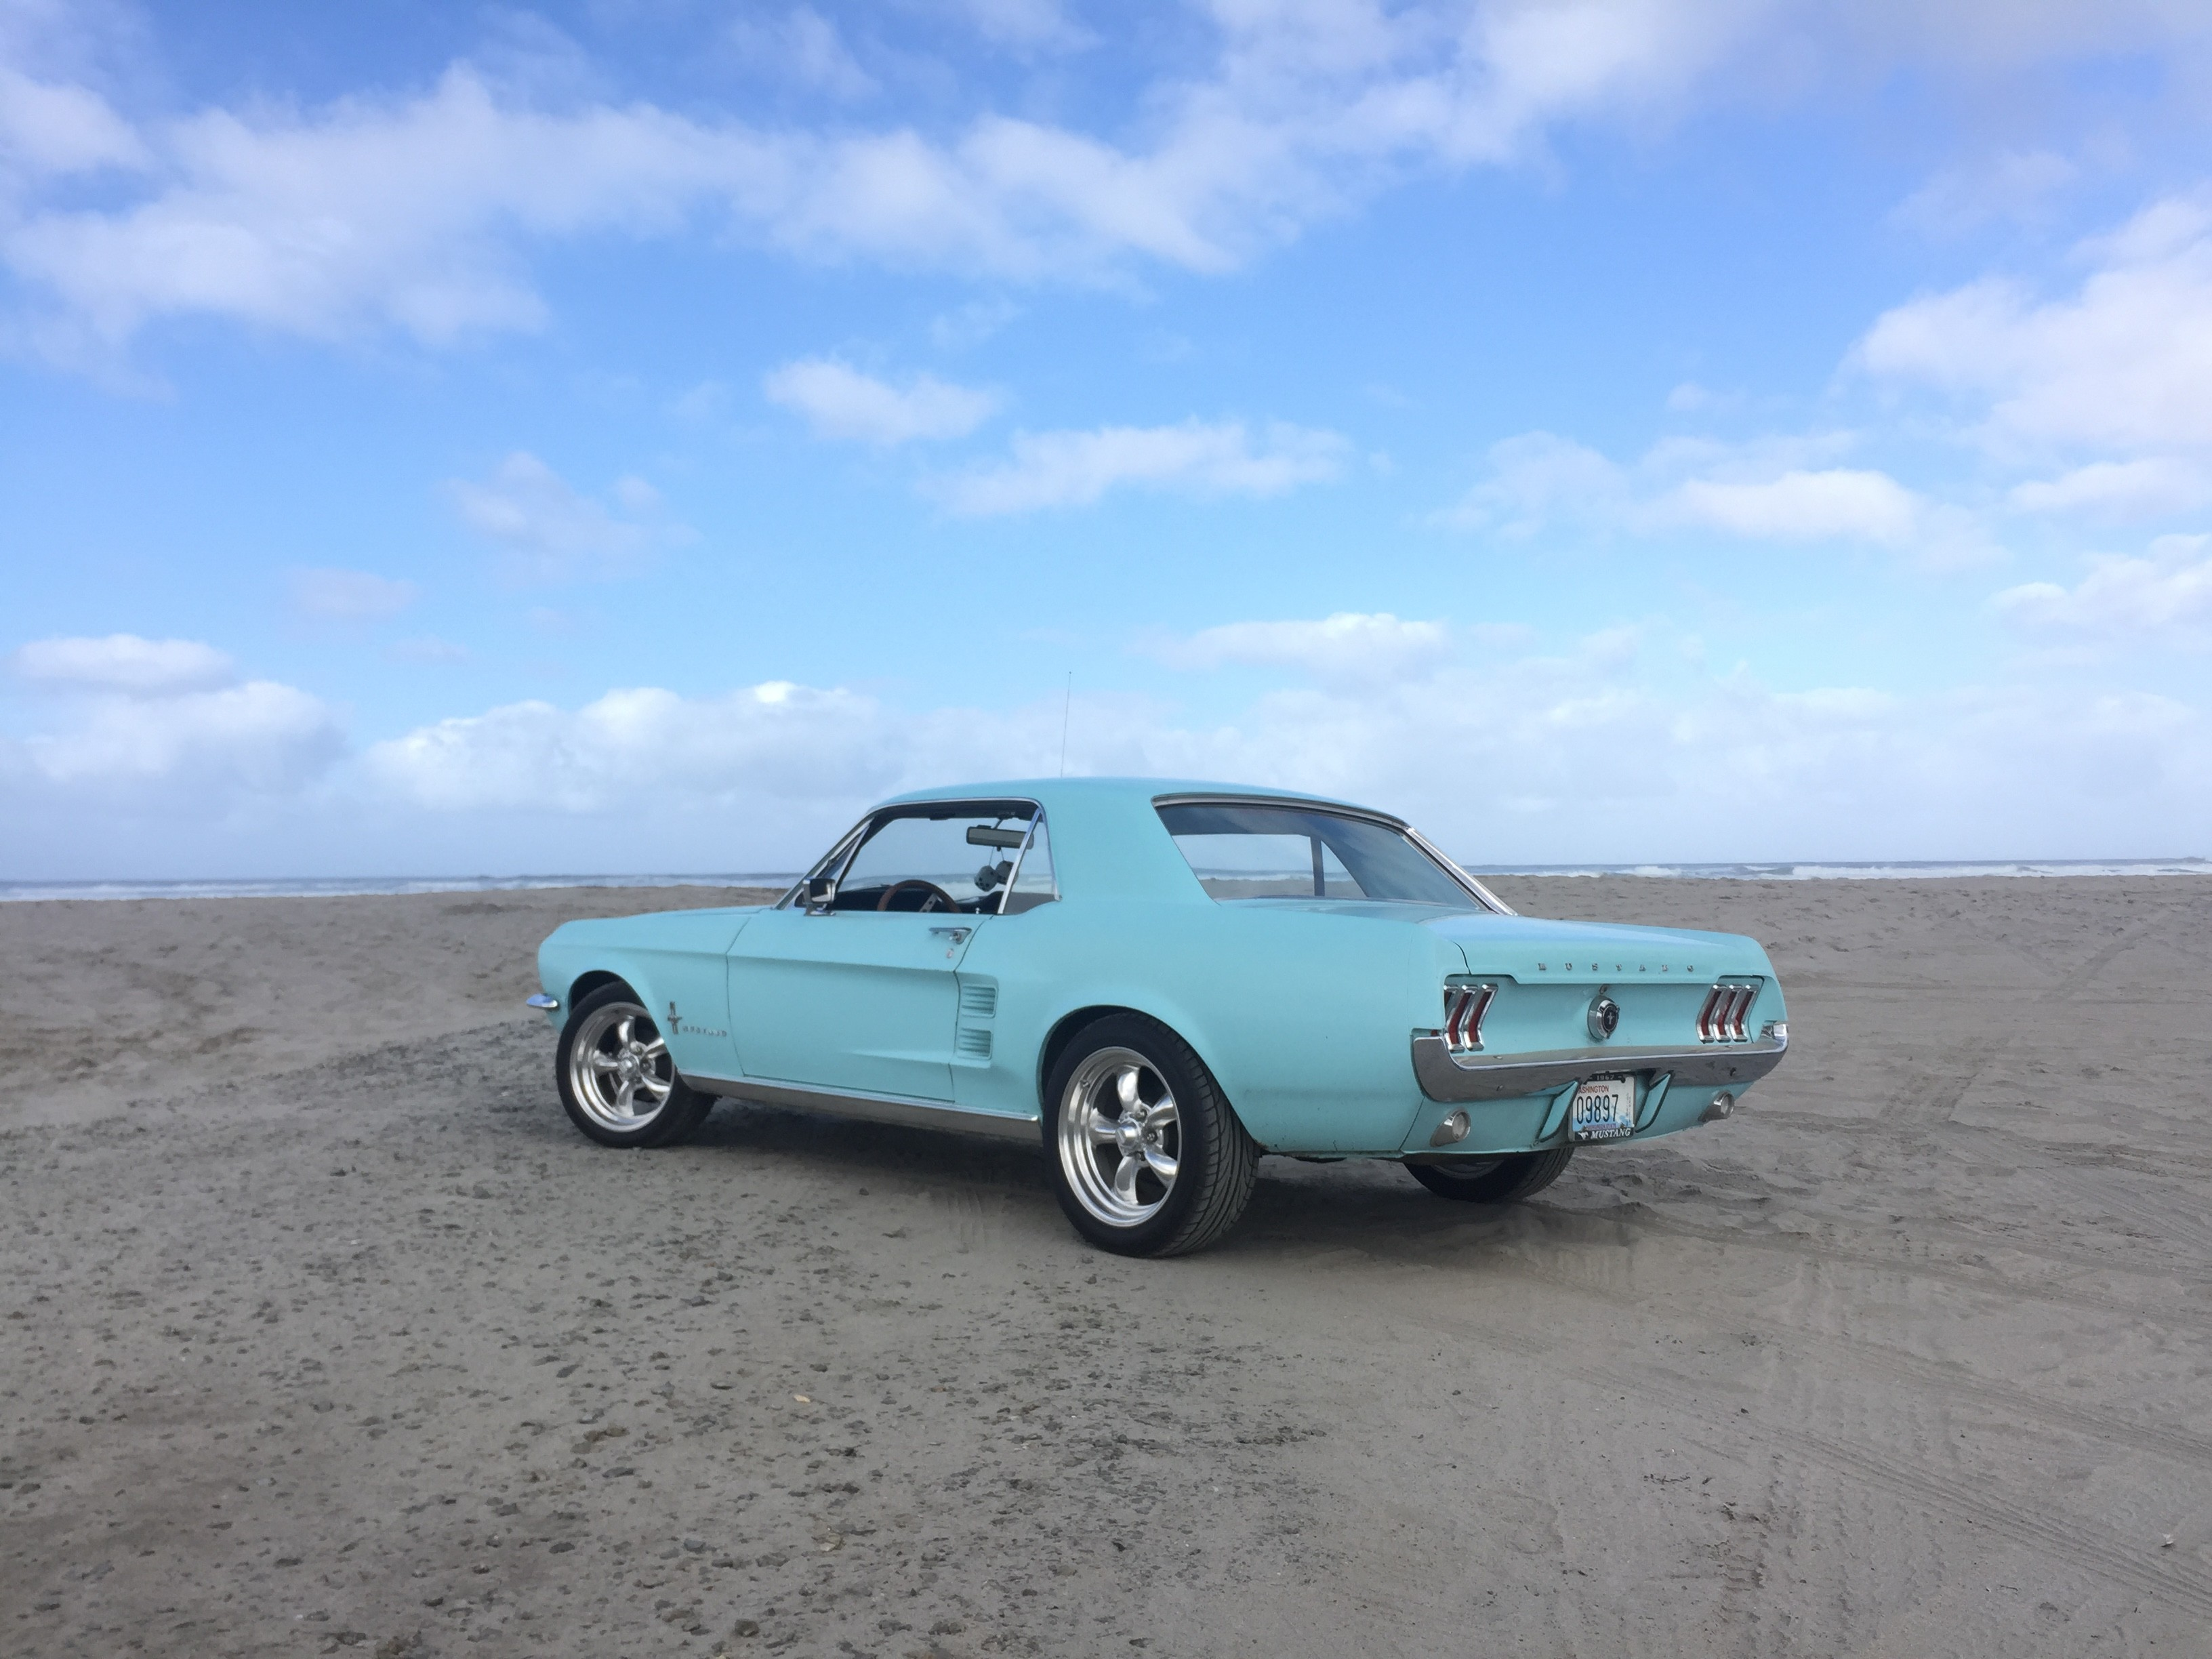 My '67 Mustang on the beach at Long Beach, Wa